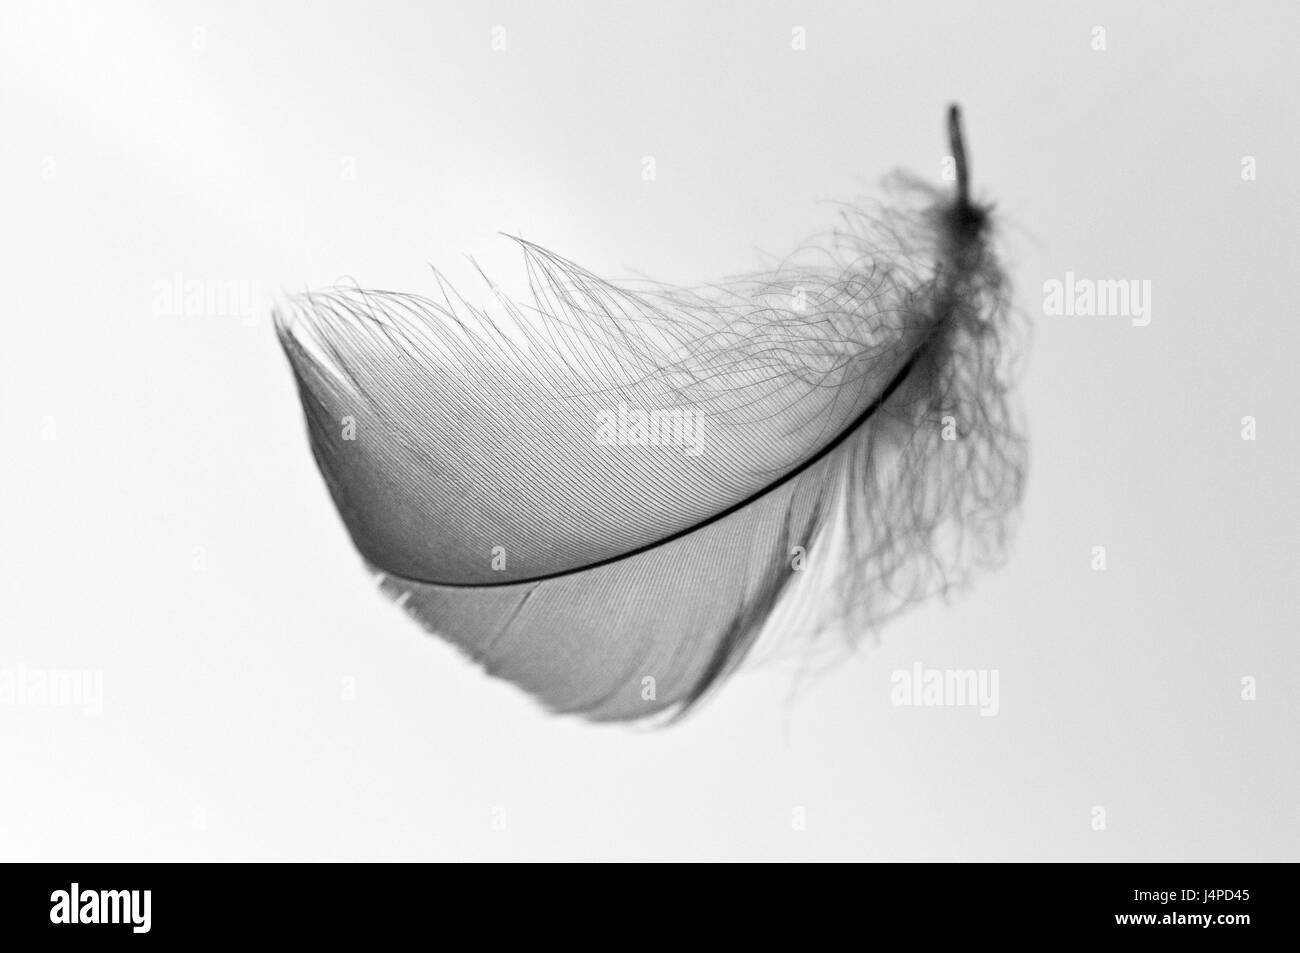 Vogel's feather, - Stock Image